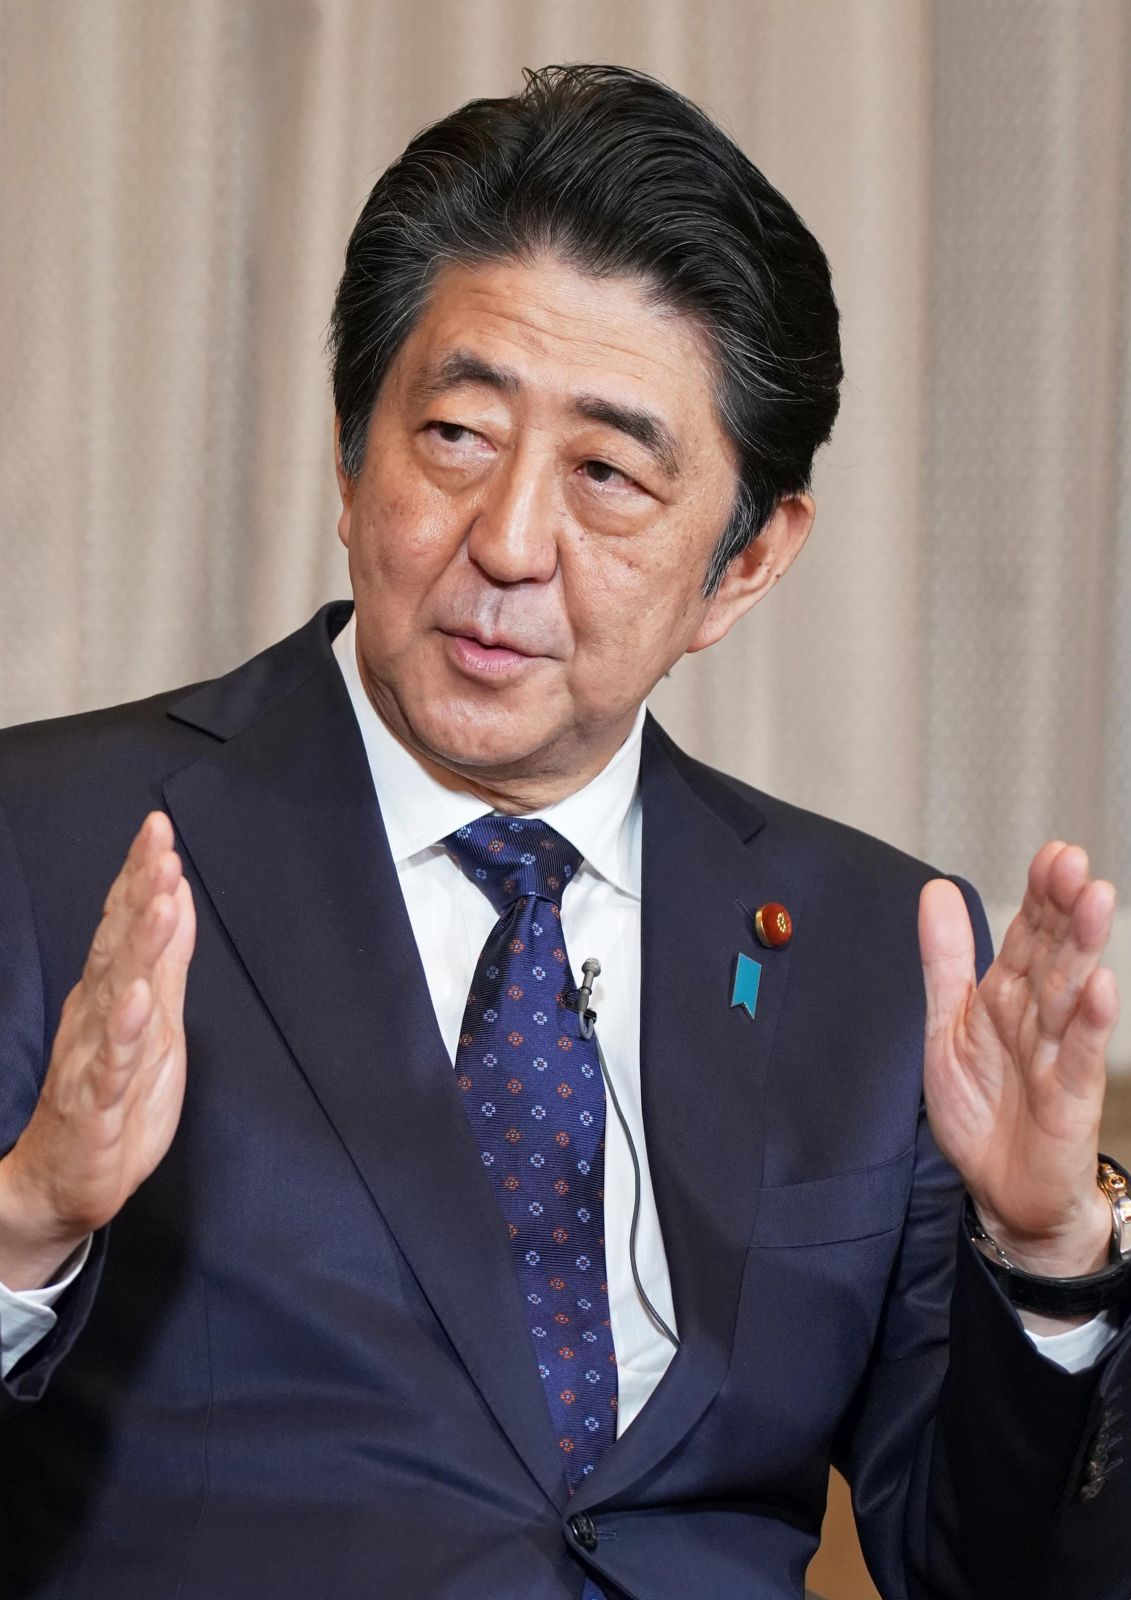 DIALOGUE   Abiding By International Rules Pays Off for Japan, says Prime Minister Abe